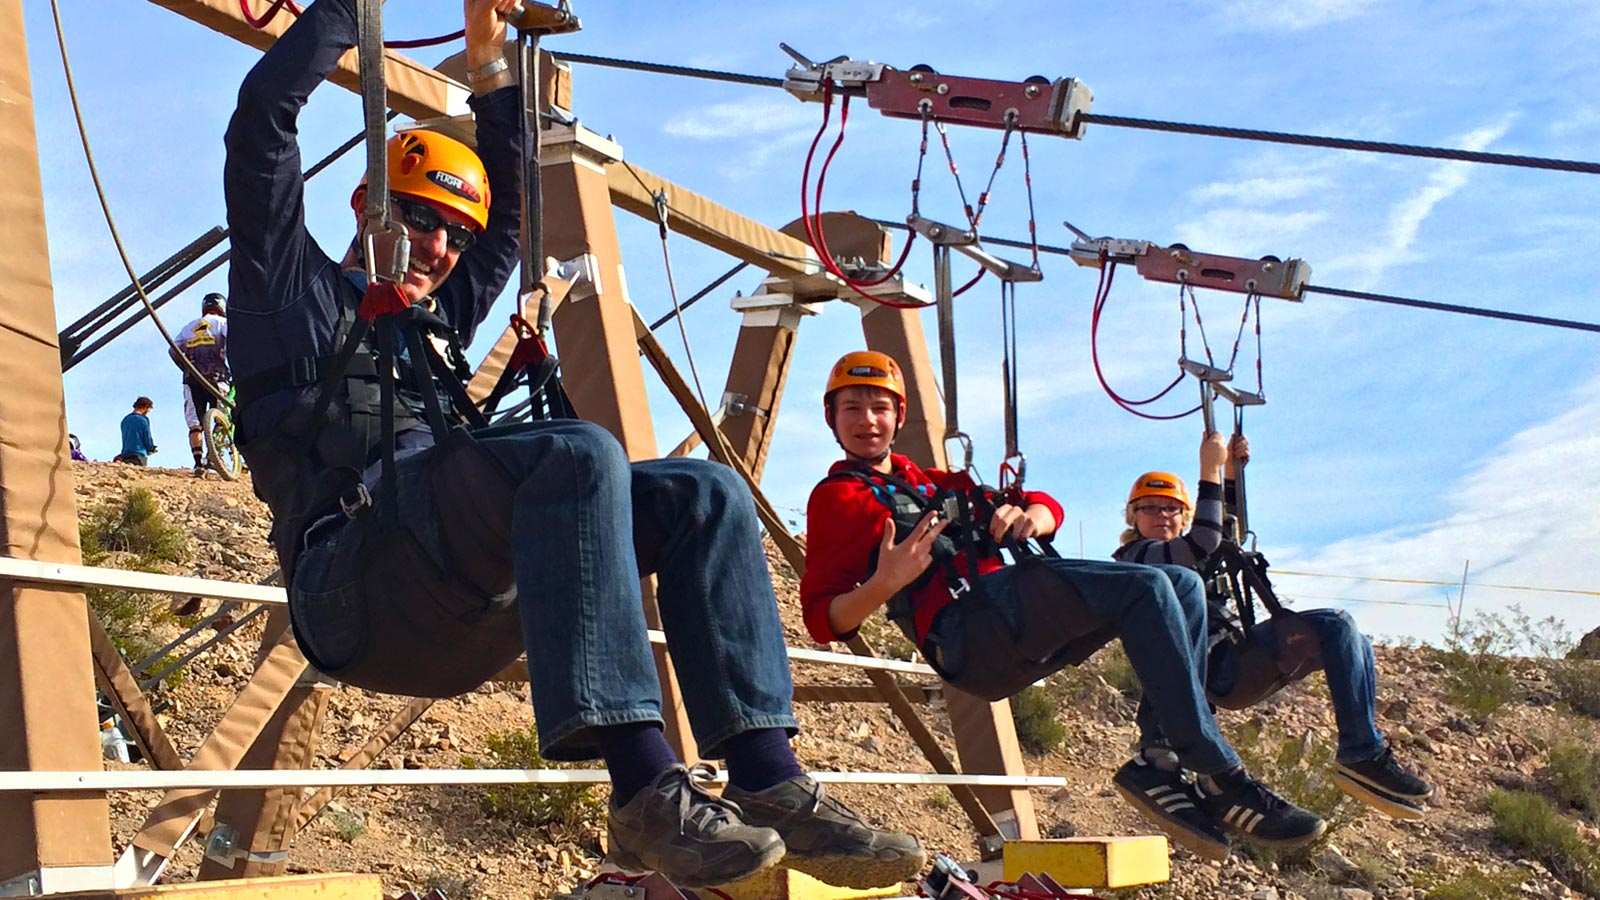 Grand Canyon Helicopter and Bootleg Canyon 8,000 foot Ziplining Adventure – $549